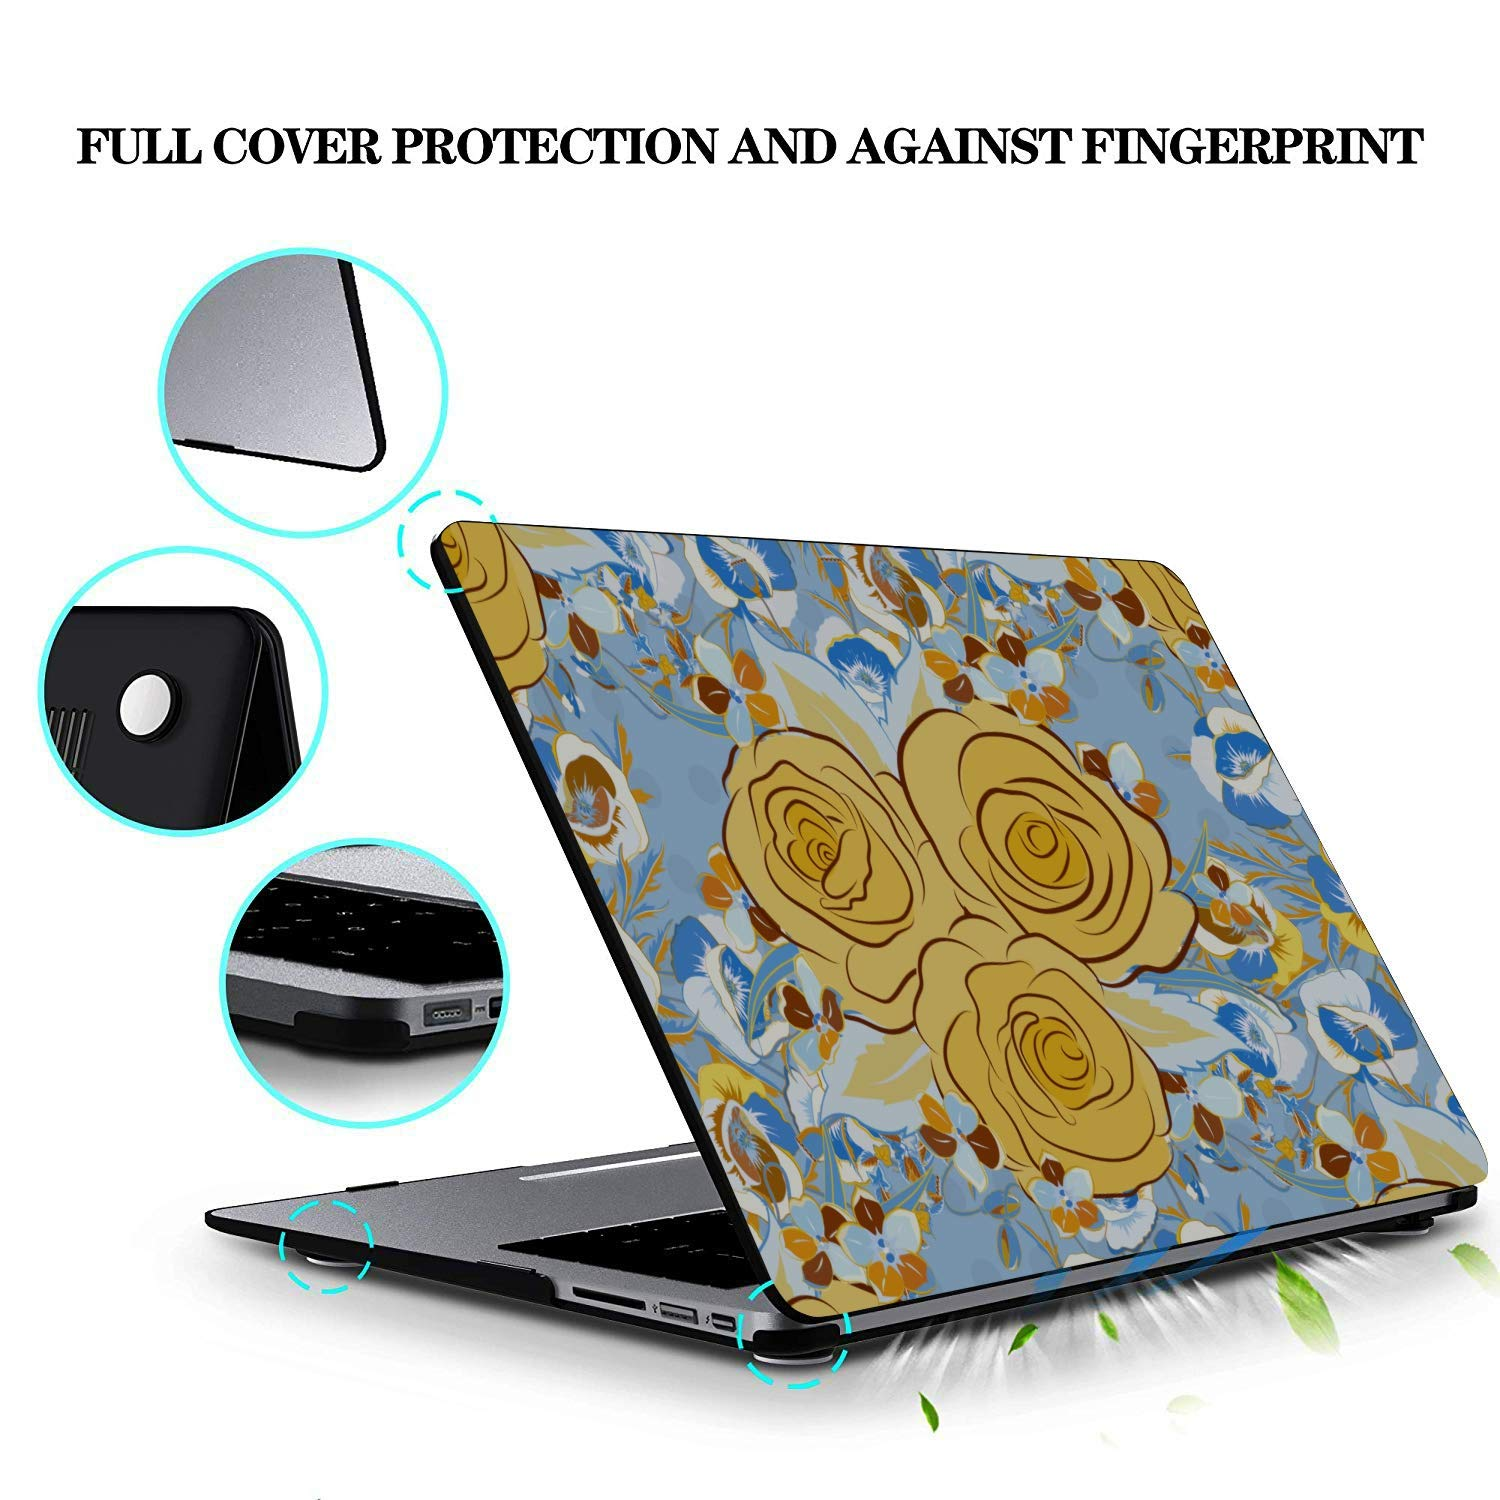 Mac Book Accessories Yellow Retro Beautiful Flower Camellia Plastic Hard Shell Compatible Mac Air 11 Pro 13 15 MacBook Case 13 Inch Protection for MacBook 2016-2019 Version